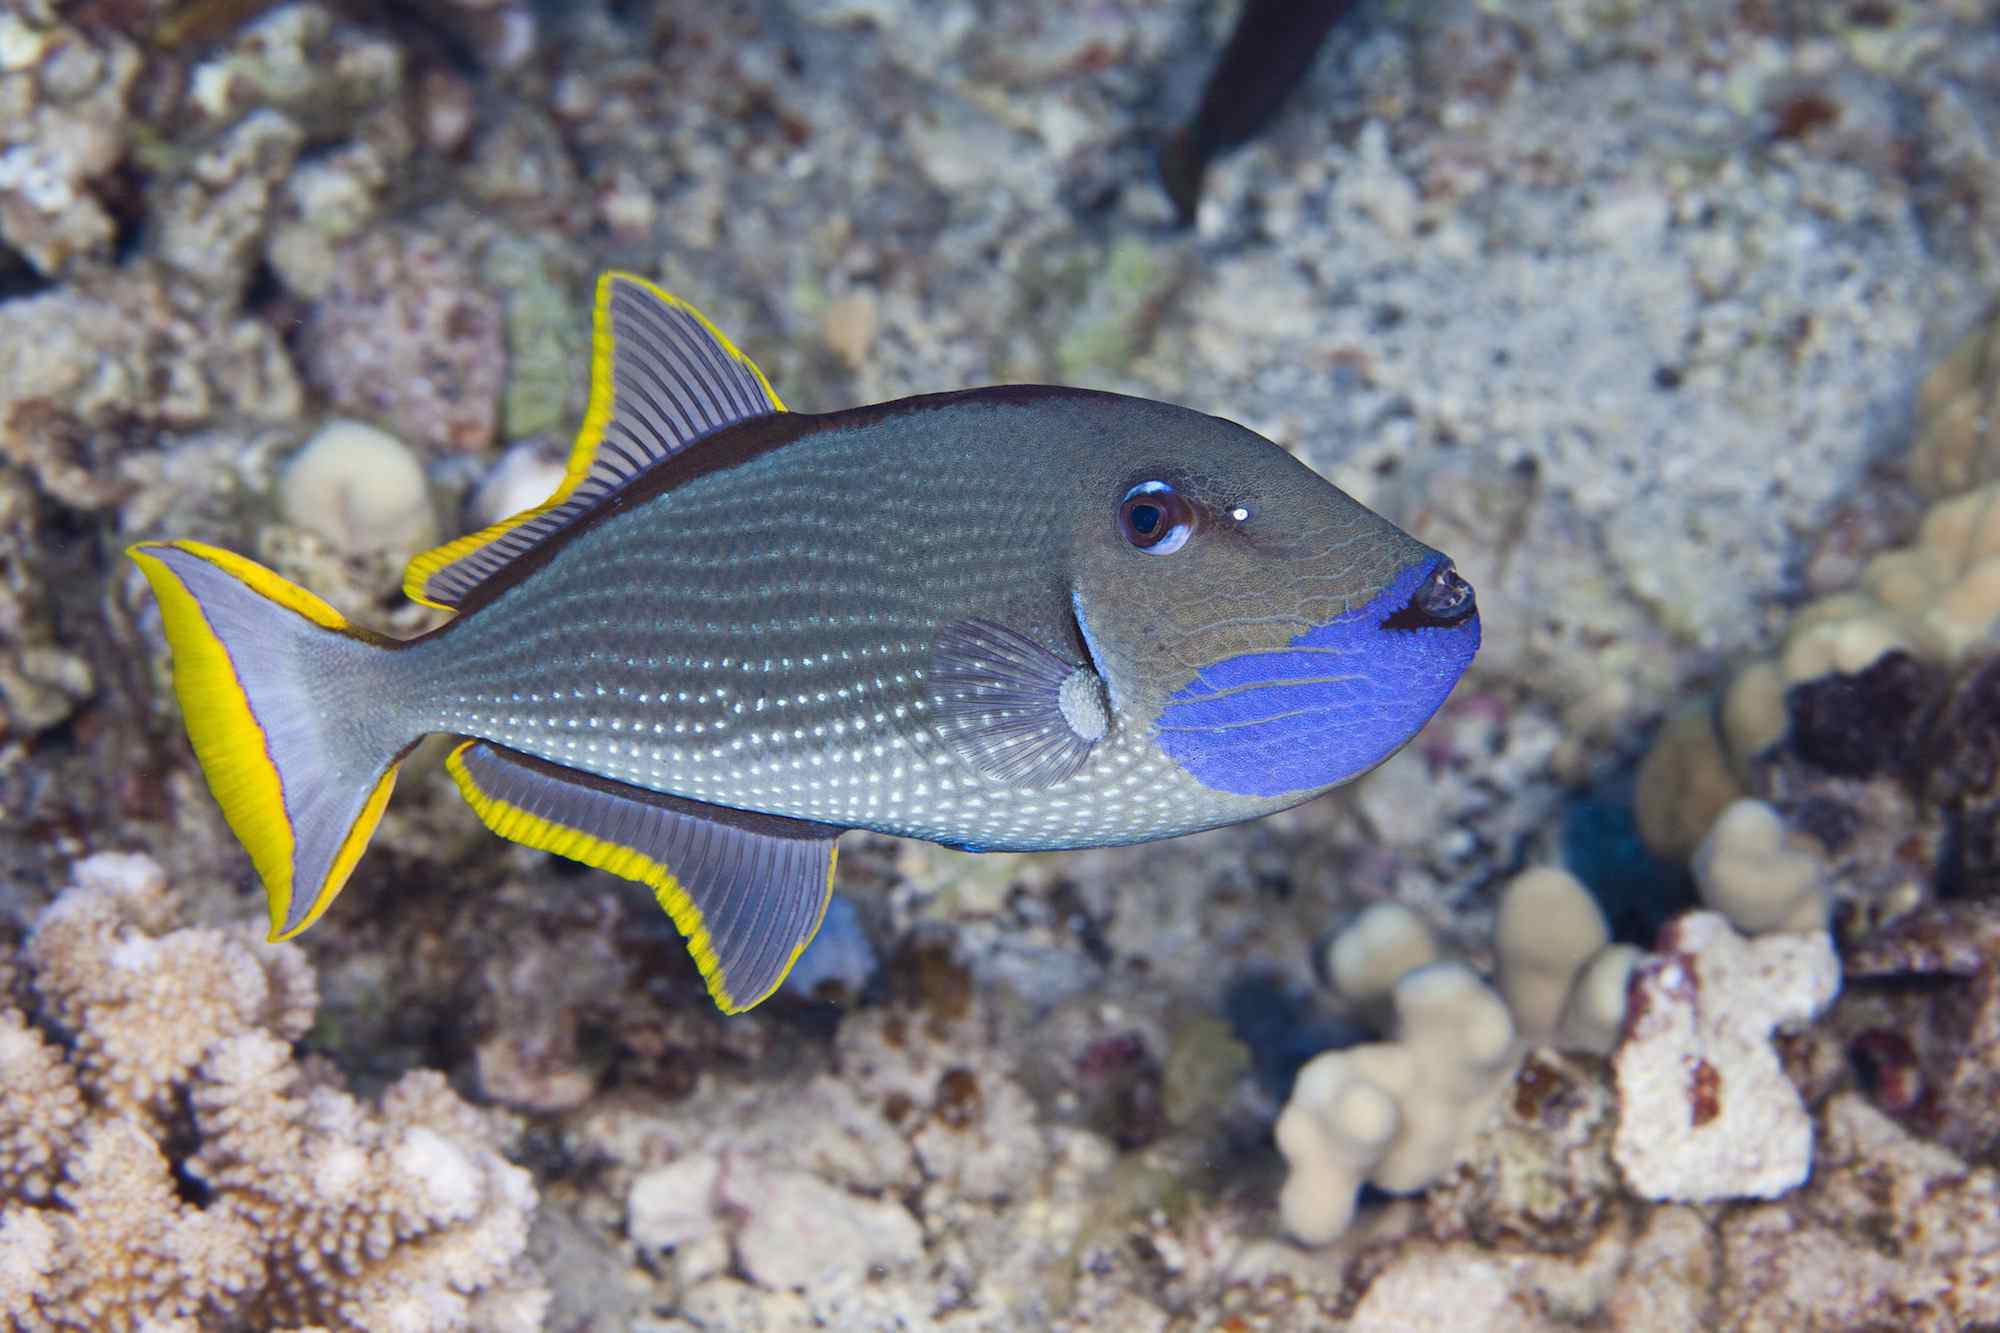 Hawaii, The Male Gilded Triggerfish (Xanthichthys Auromarginatus) Is More Colorful Than The Female. Both Spend A Great Deal Of Time Above The Reef Where They Feed On Passing Plankton.